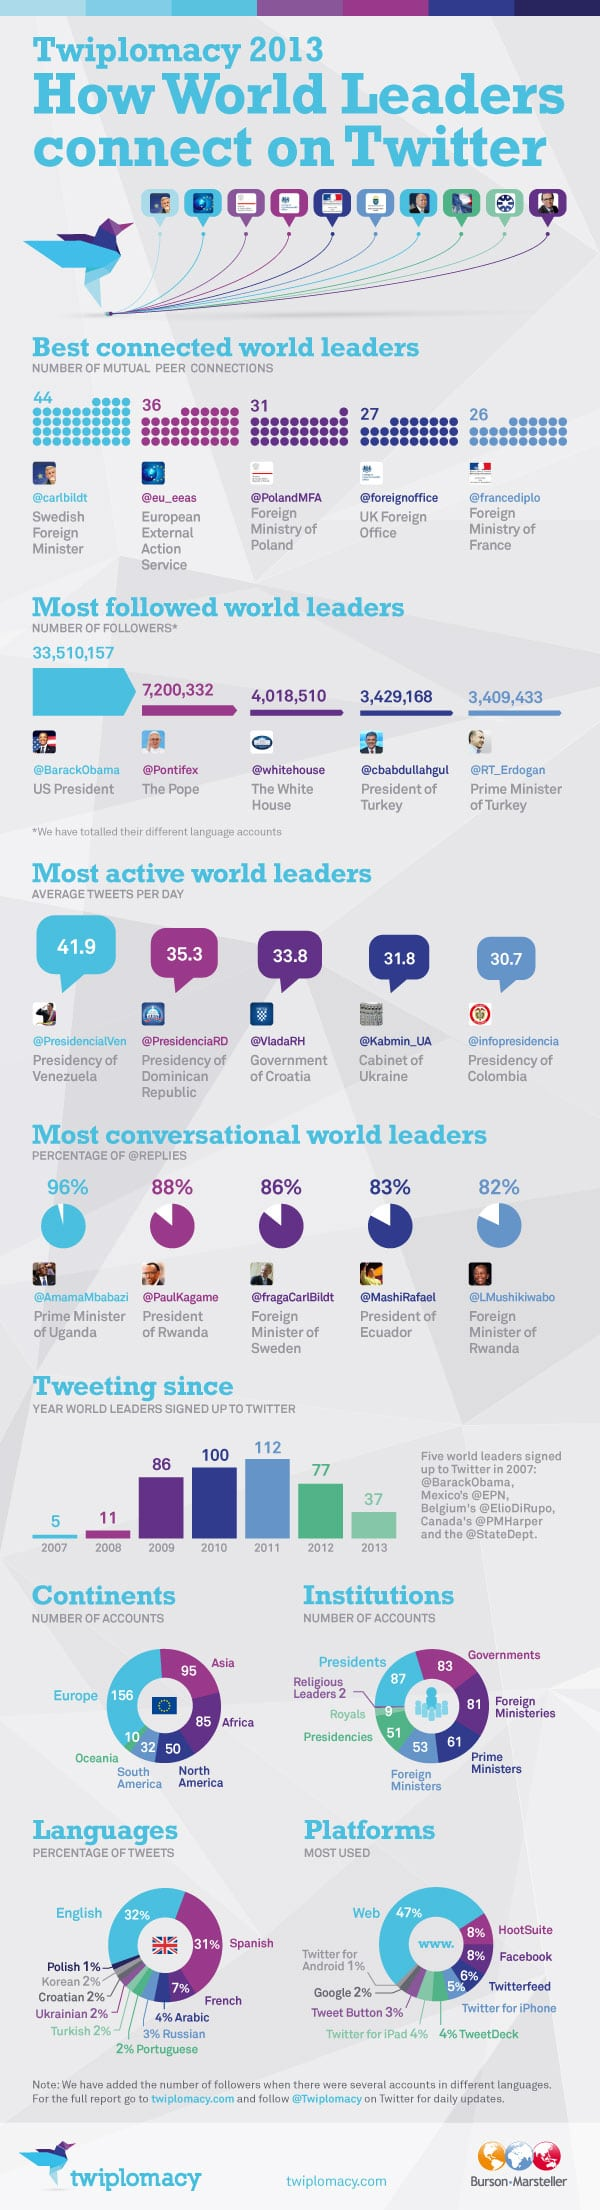 world-leaders-twitter-influence